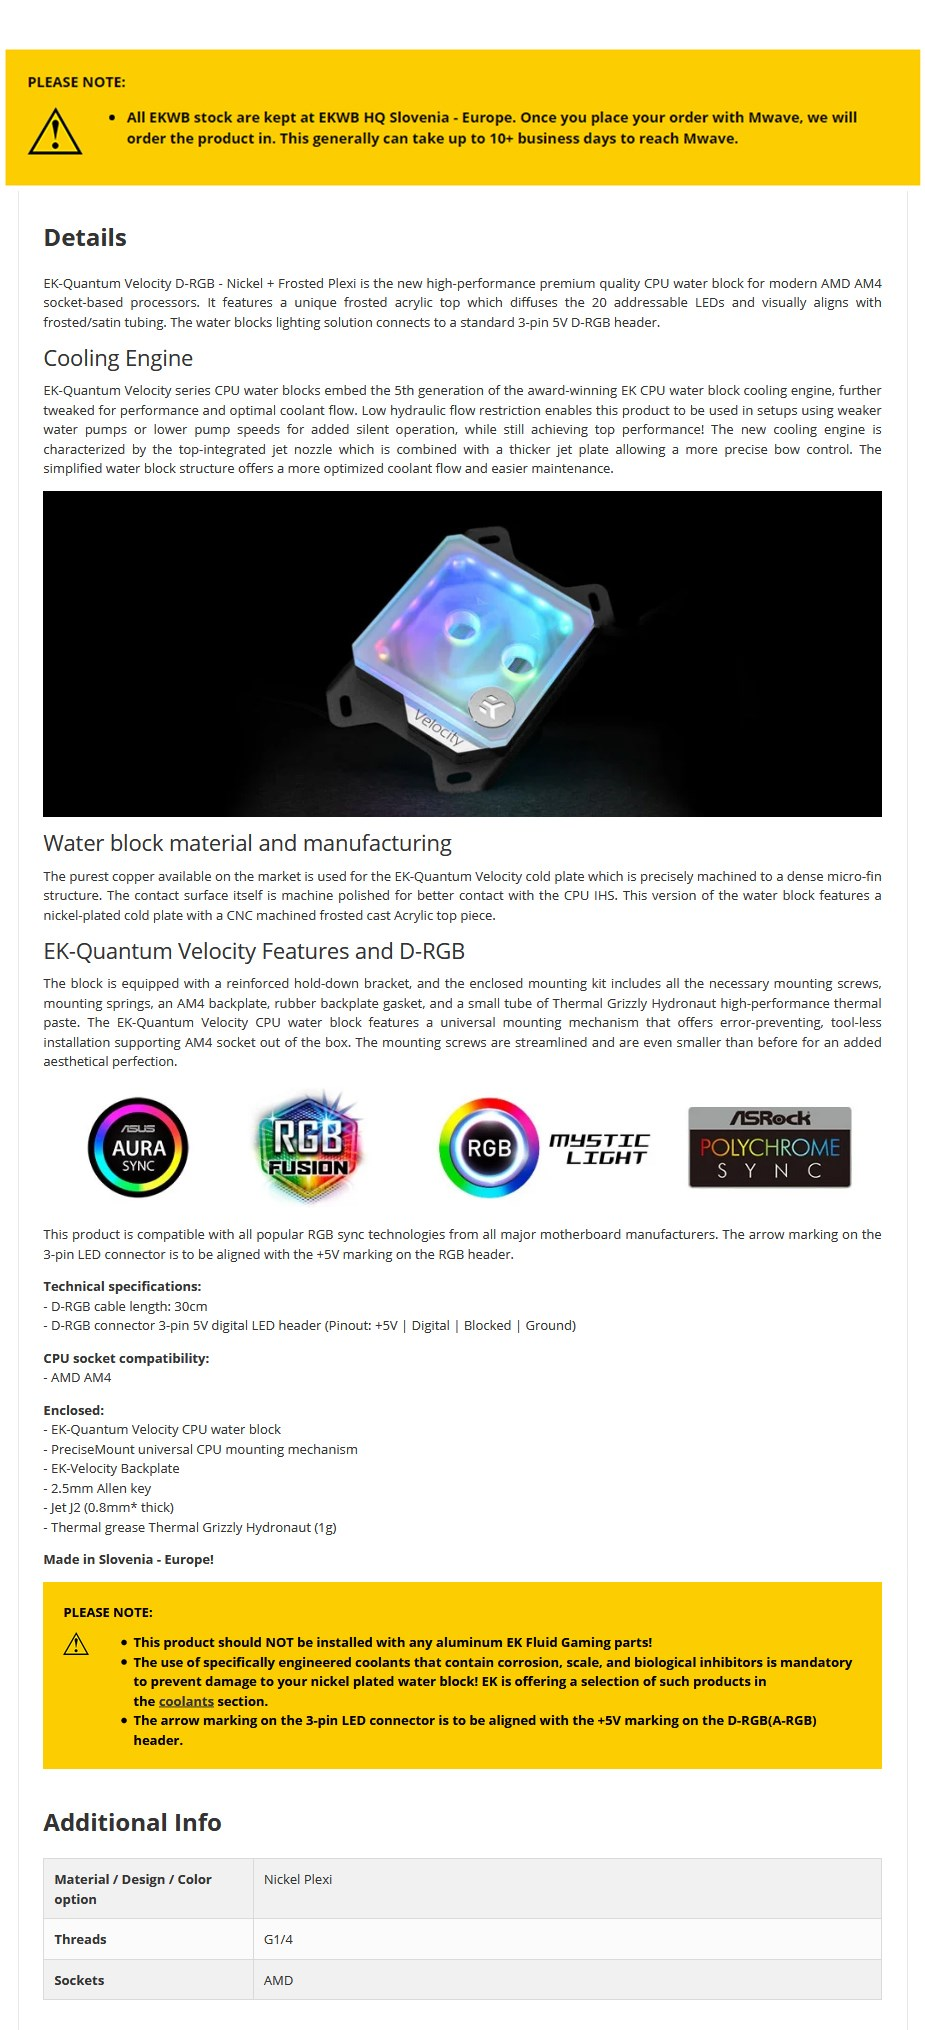 EKWB EK-Quantum Velocity D-RGB CPU Waterblock Nickel + Frosted Plexi - AMD - Overview 1